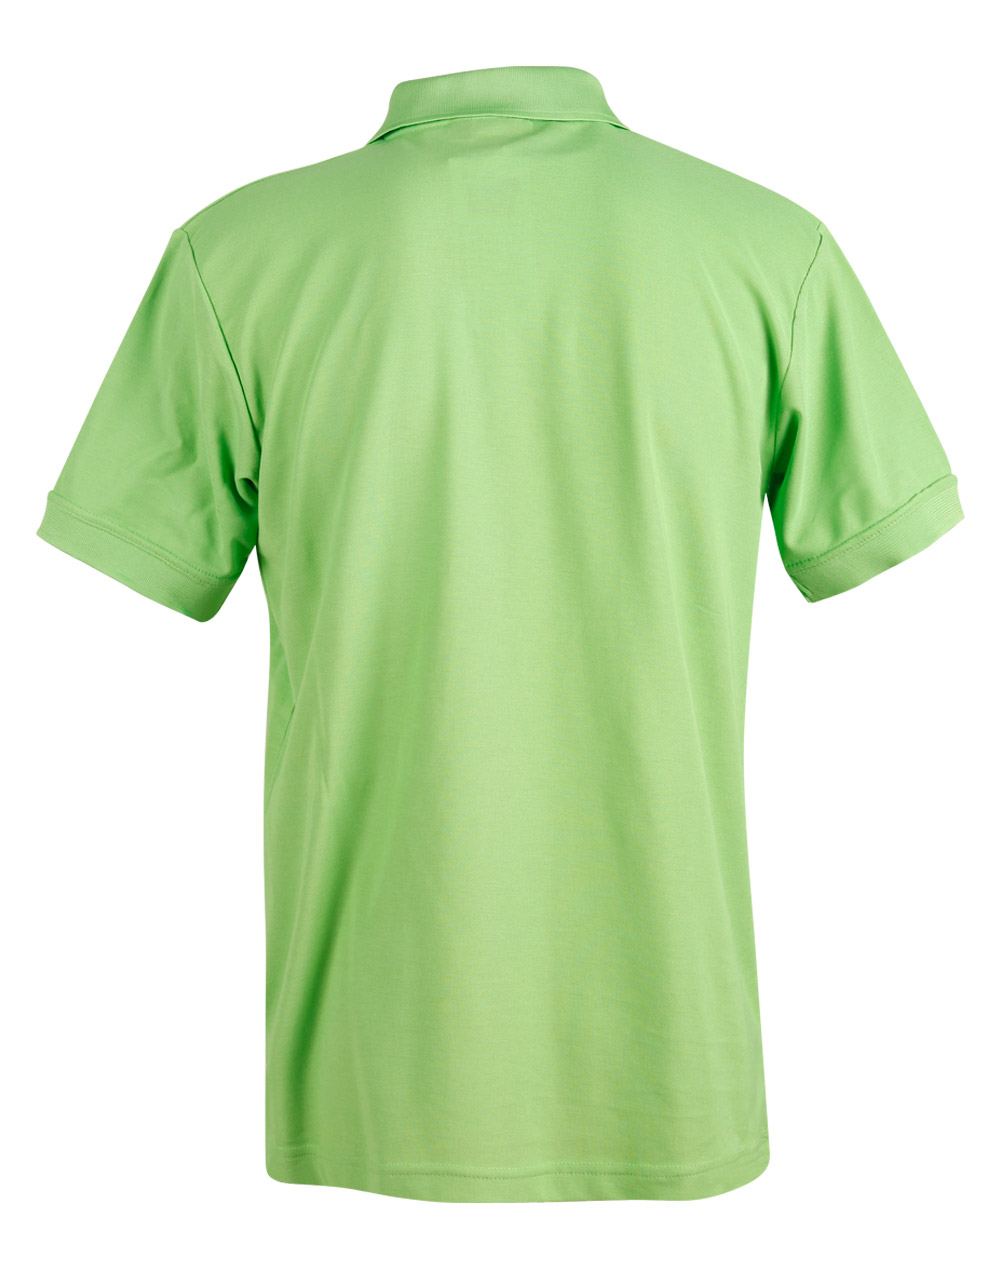 https://s3-ap-southeast-1.amazonaws.com/ws-imgs/POLOSHIRTS/PS63_AppleGreen_Back.jpg